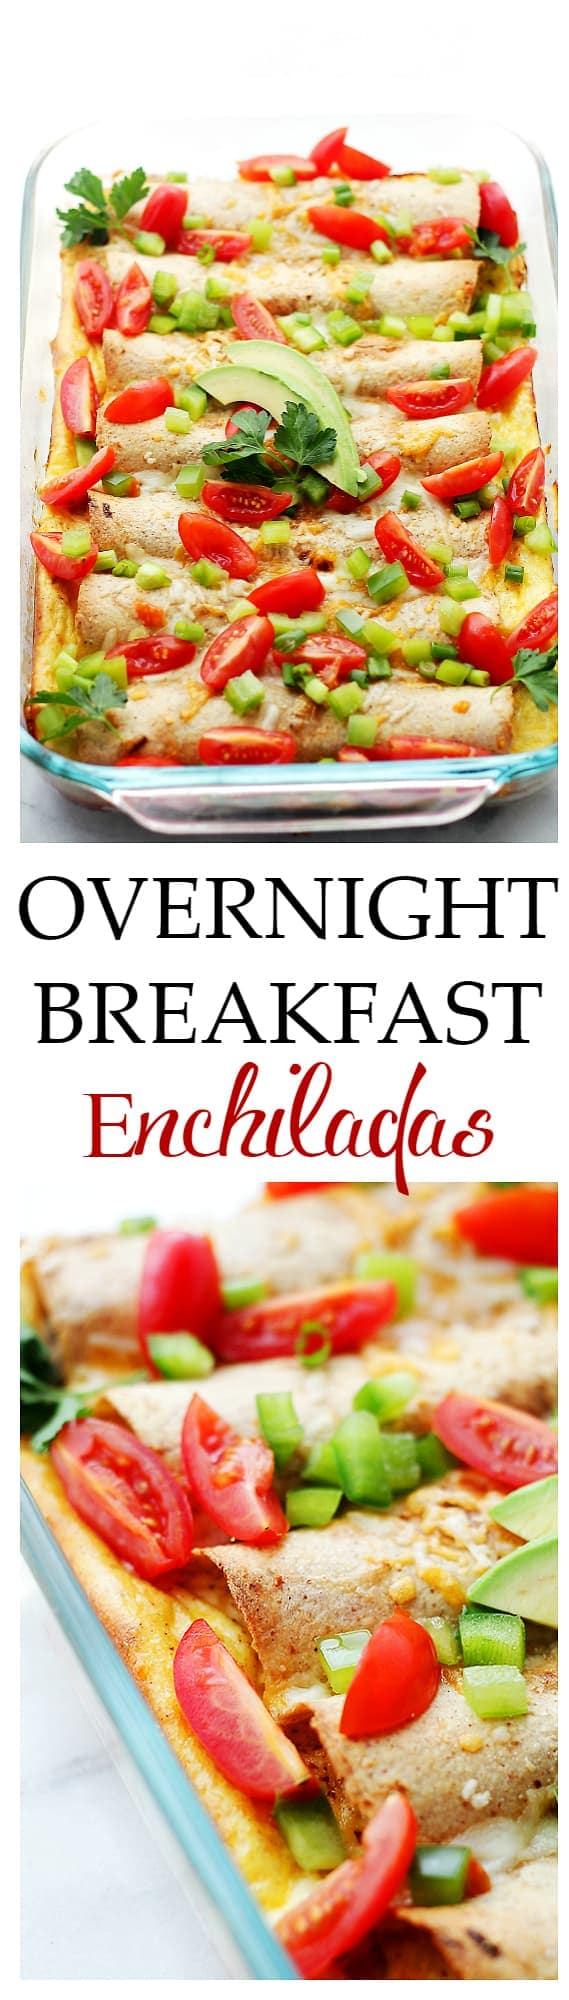 Overnight Breakfast Enchiladas Recipe | Diethood